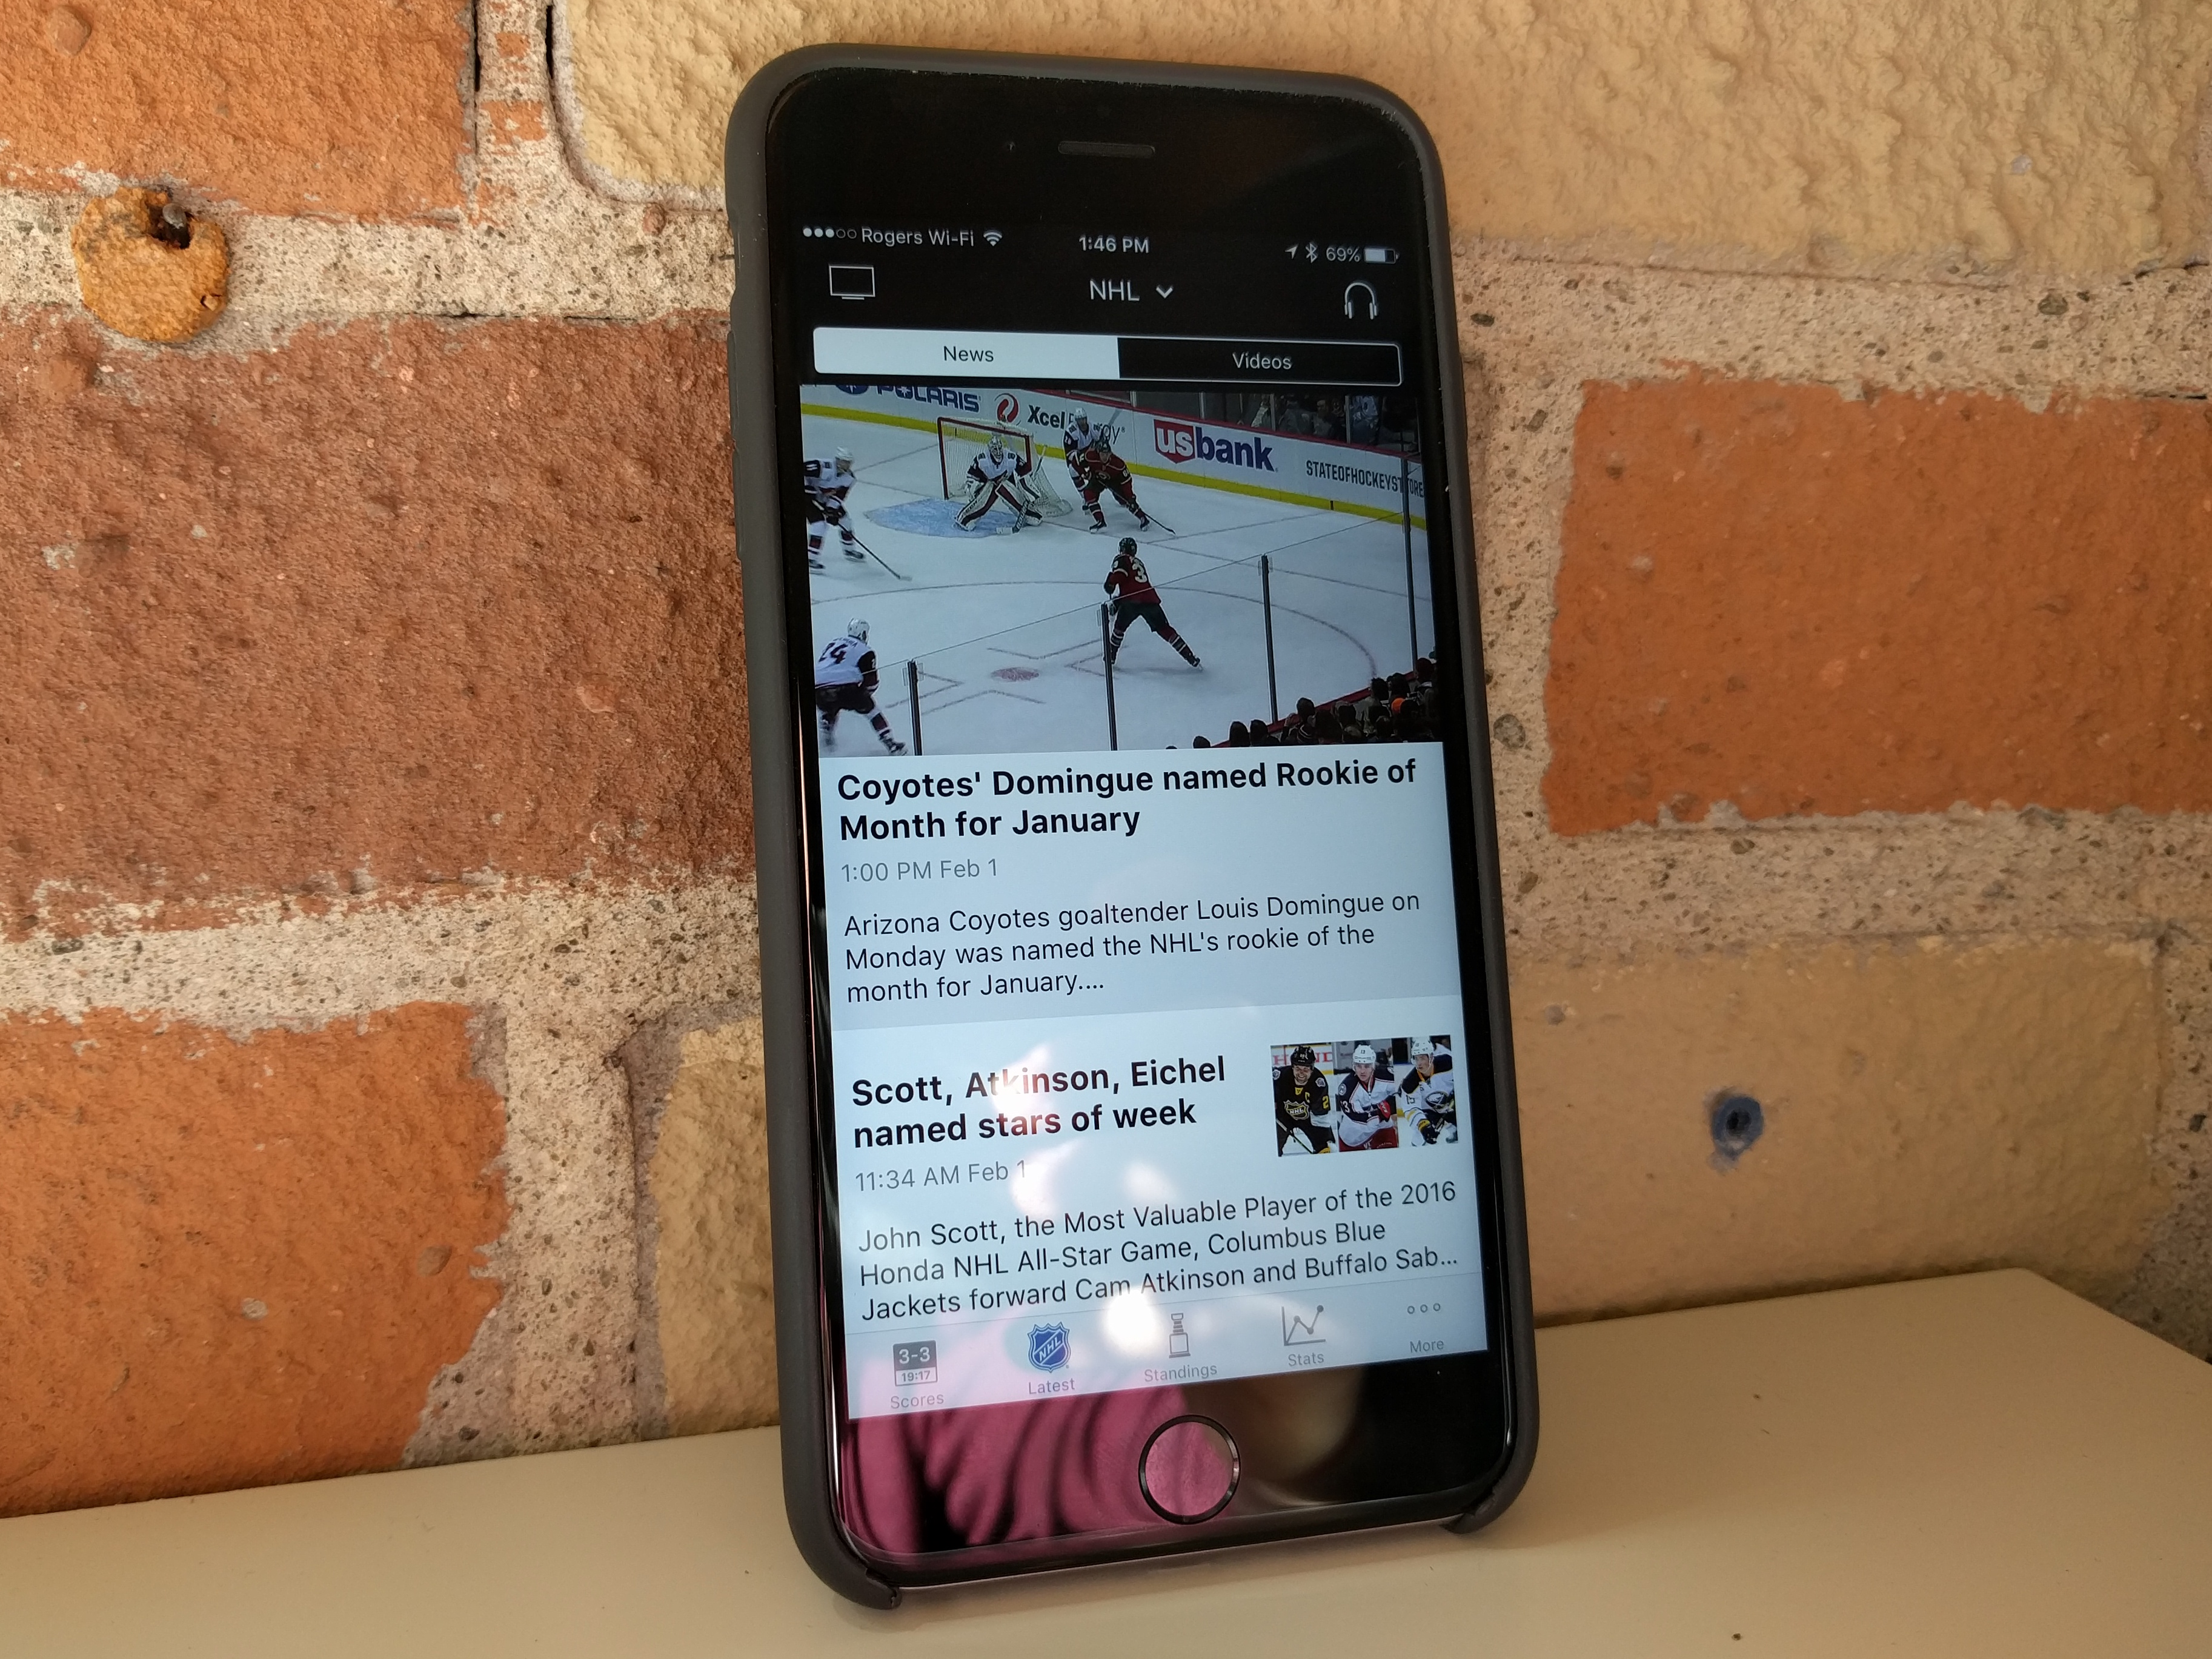 Nhl And Rogers Revamp Gamecentre Live App With Better Streaming Quality Customization Mobilesyrup